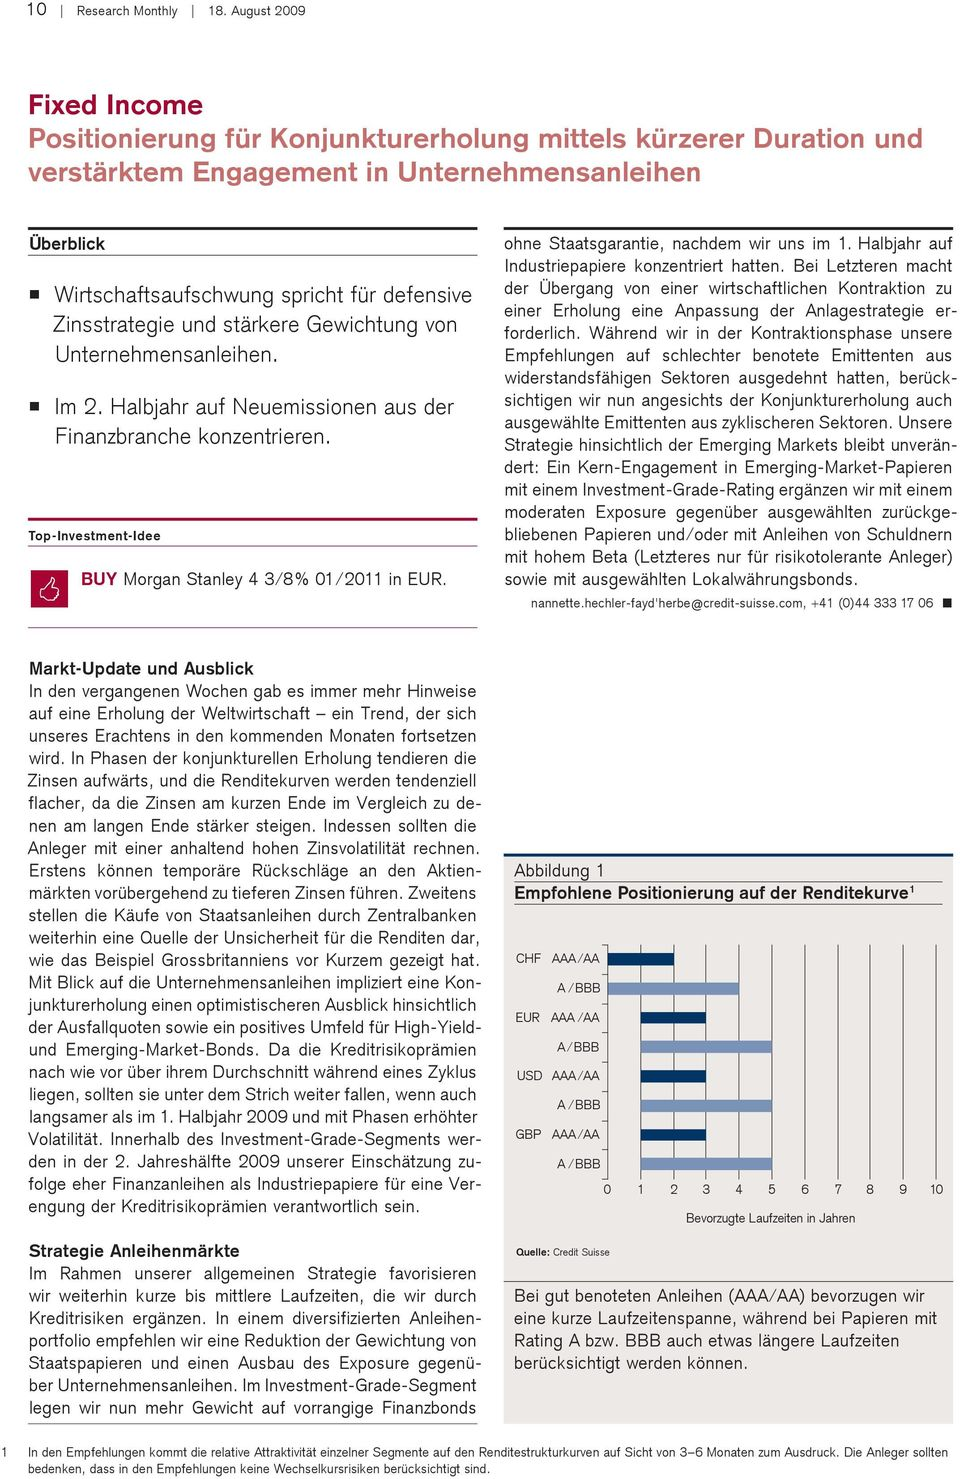 nd stärkere Gewichtng von Unternehmensanleihen. Im 2. Halbjahr af Neemissionen as der Finanzbranche konzentrieren. Top-Investment-Idee BUY Morgan Stanley 4 3/8% 01/2011 in EUR.